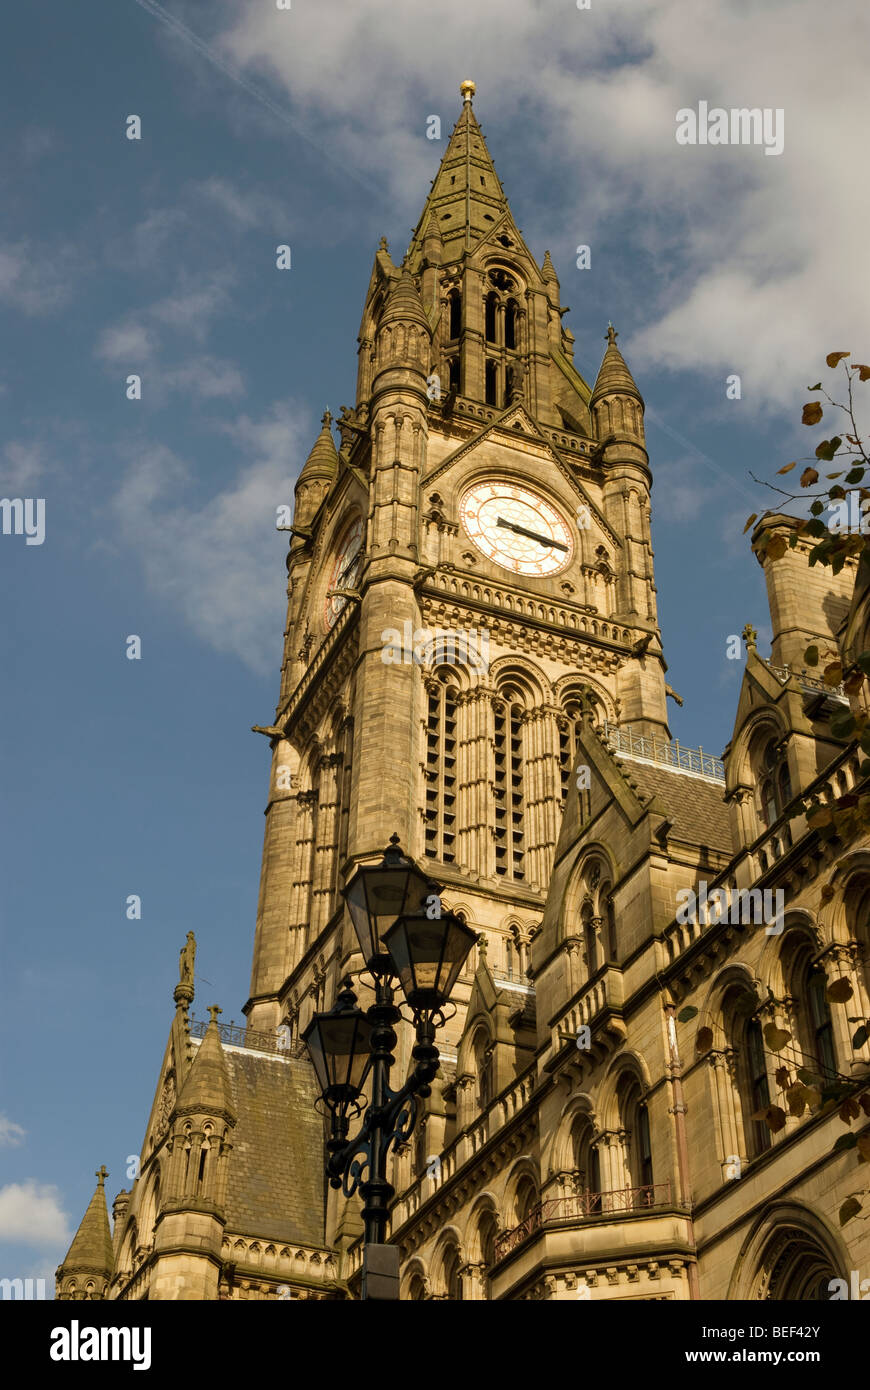 Manchester City Town Hall, Manchester, north west England. - Stock Image